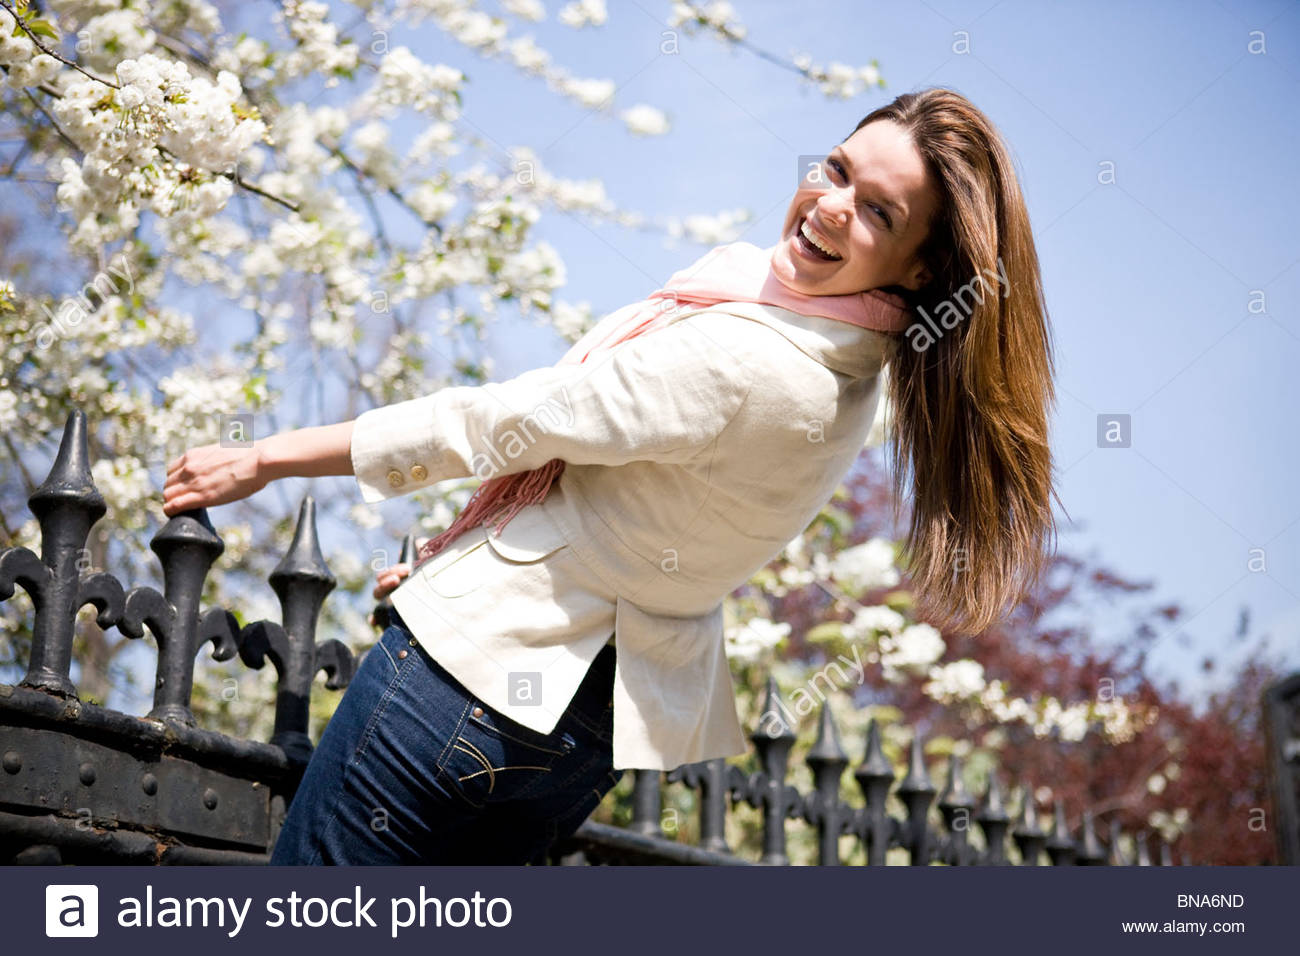 A young woman swinging on railings in springtime - Stock Image